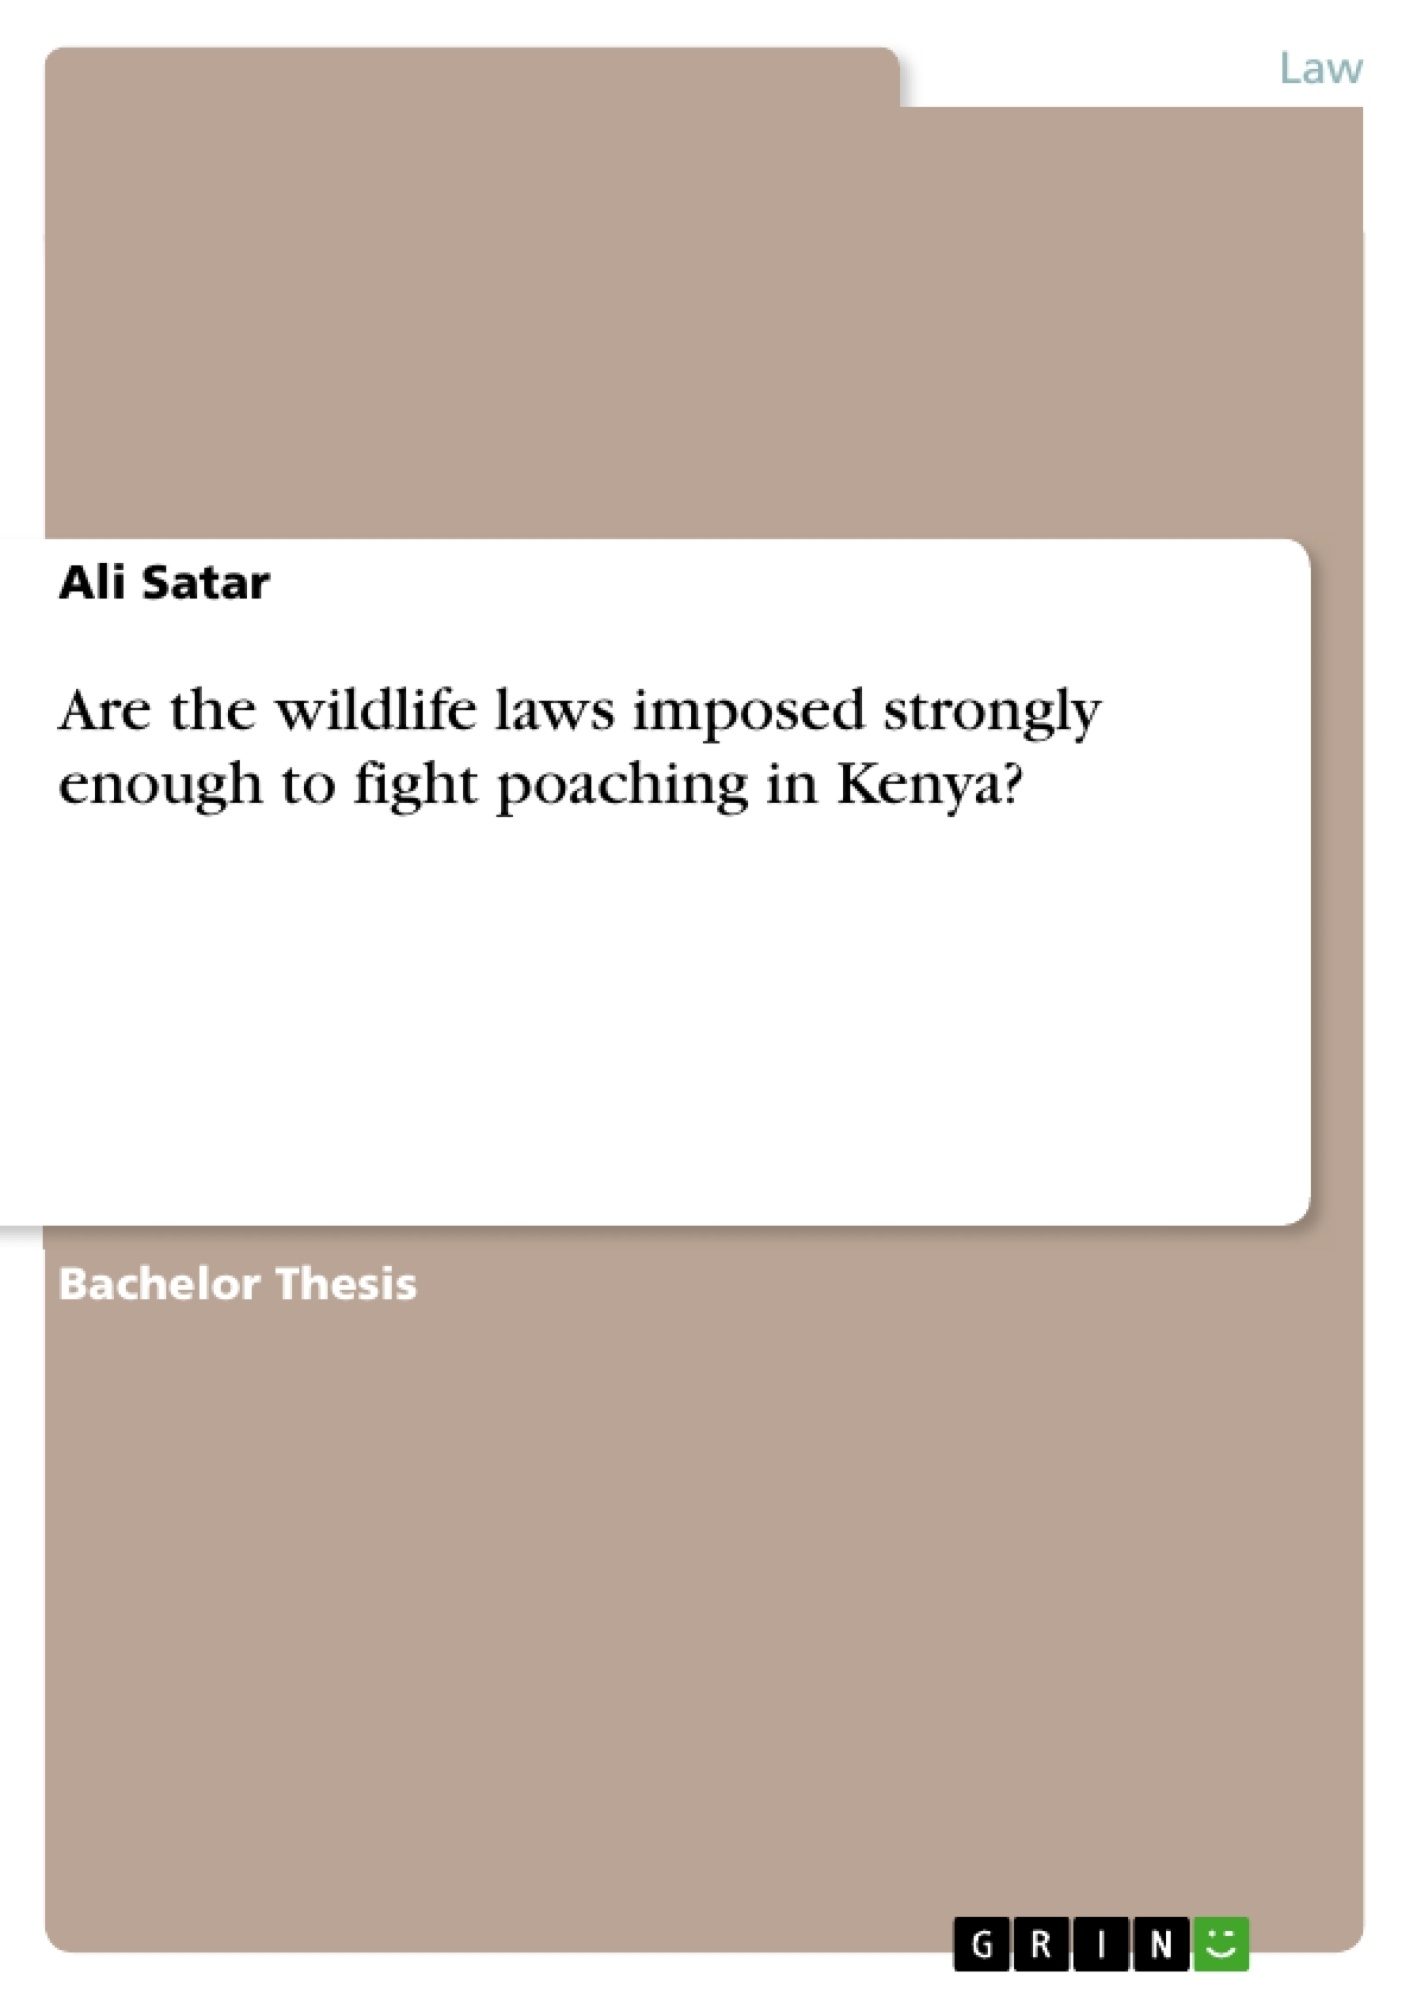 Title: Are the wildlife laws imposed strongly enough to fight poaching in Kenya?